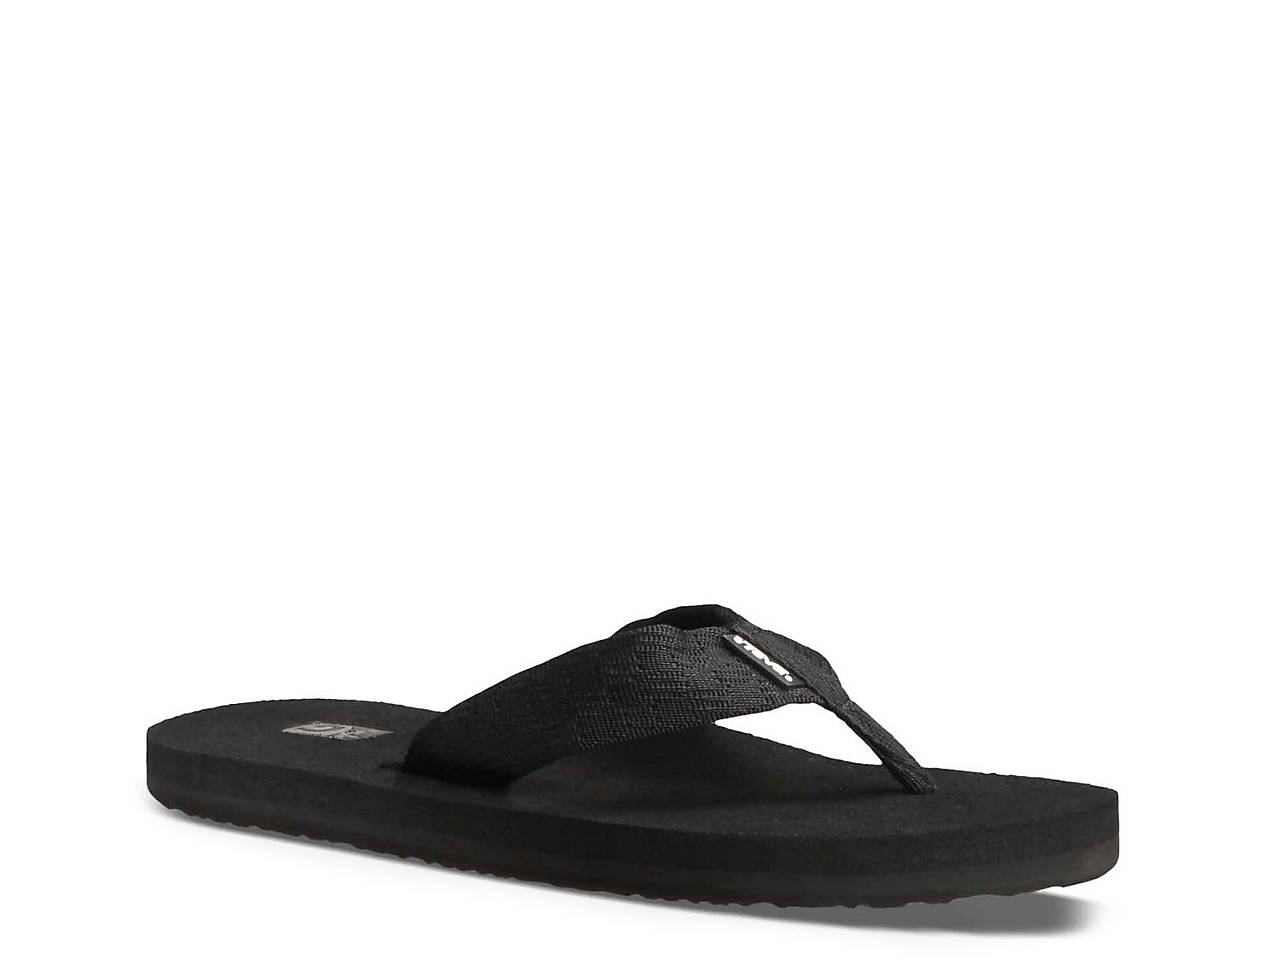 c7ede2337277 Teva Mush II Flip Flop Men s Shoes